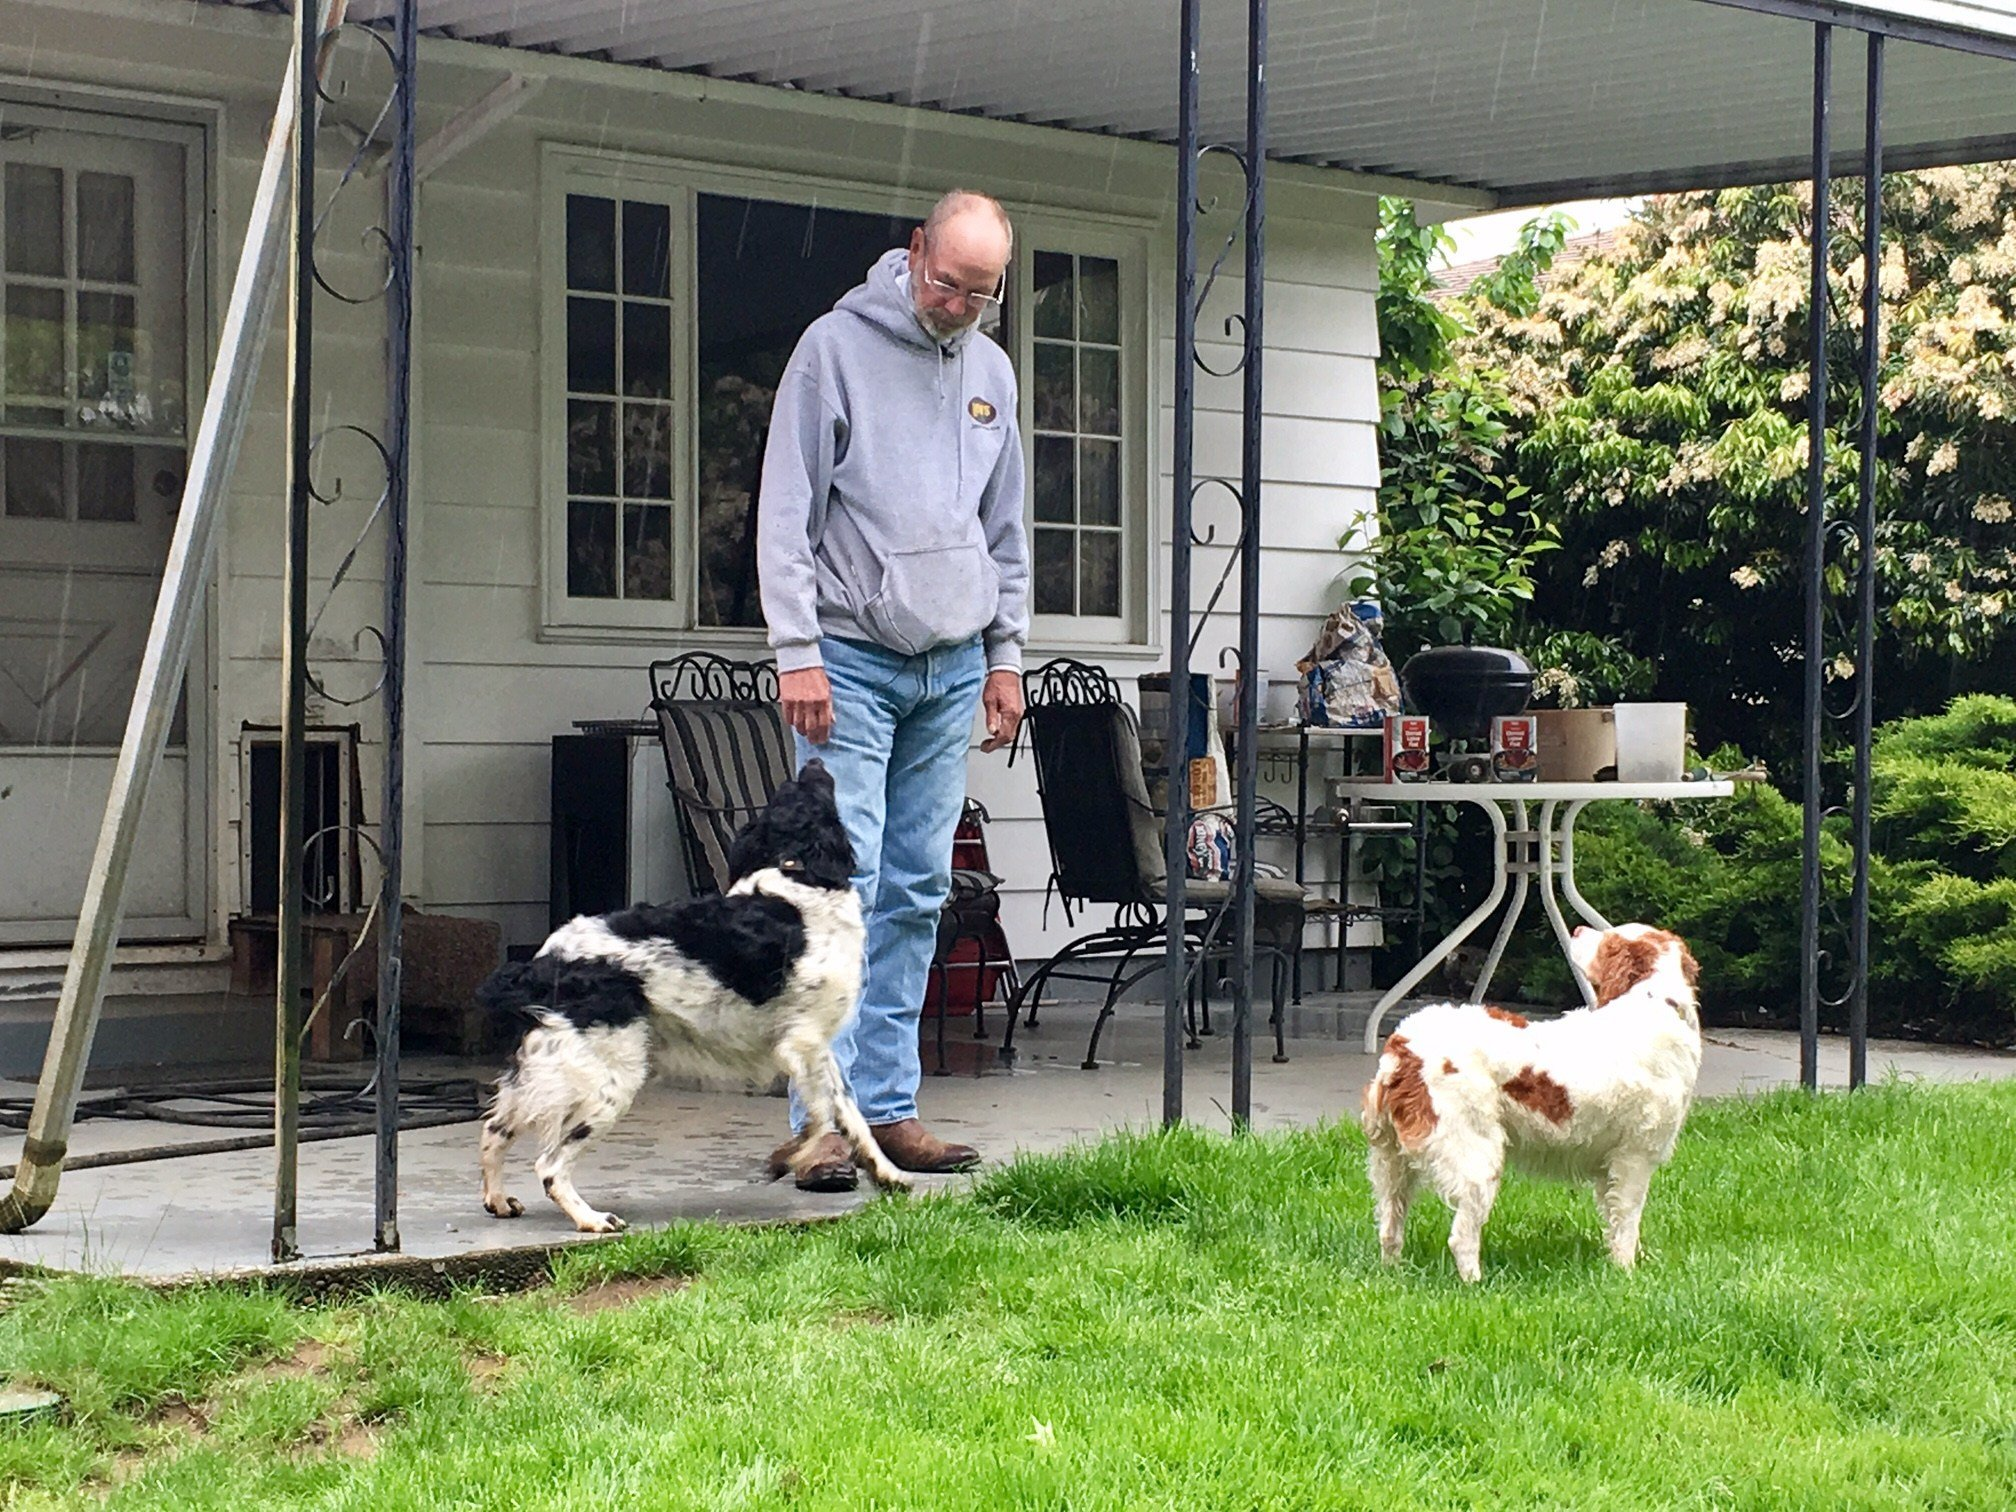 Richard Schmidtke and his two dogs, Bandit and Snowflake Thursday.